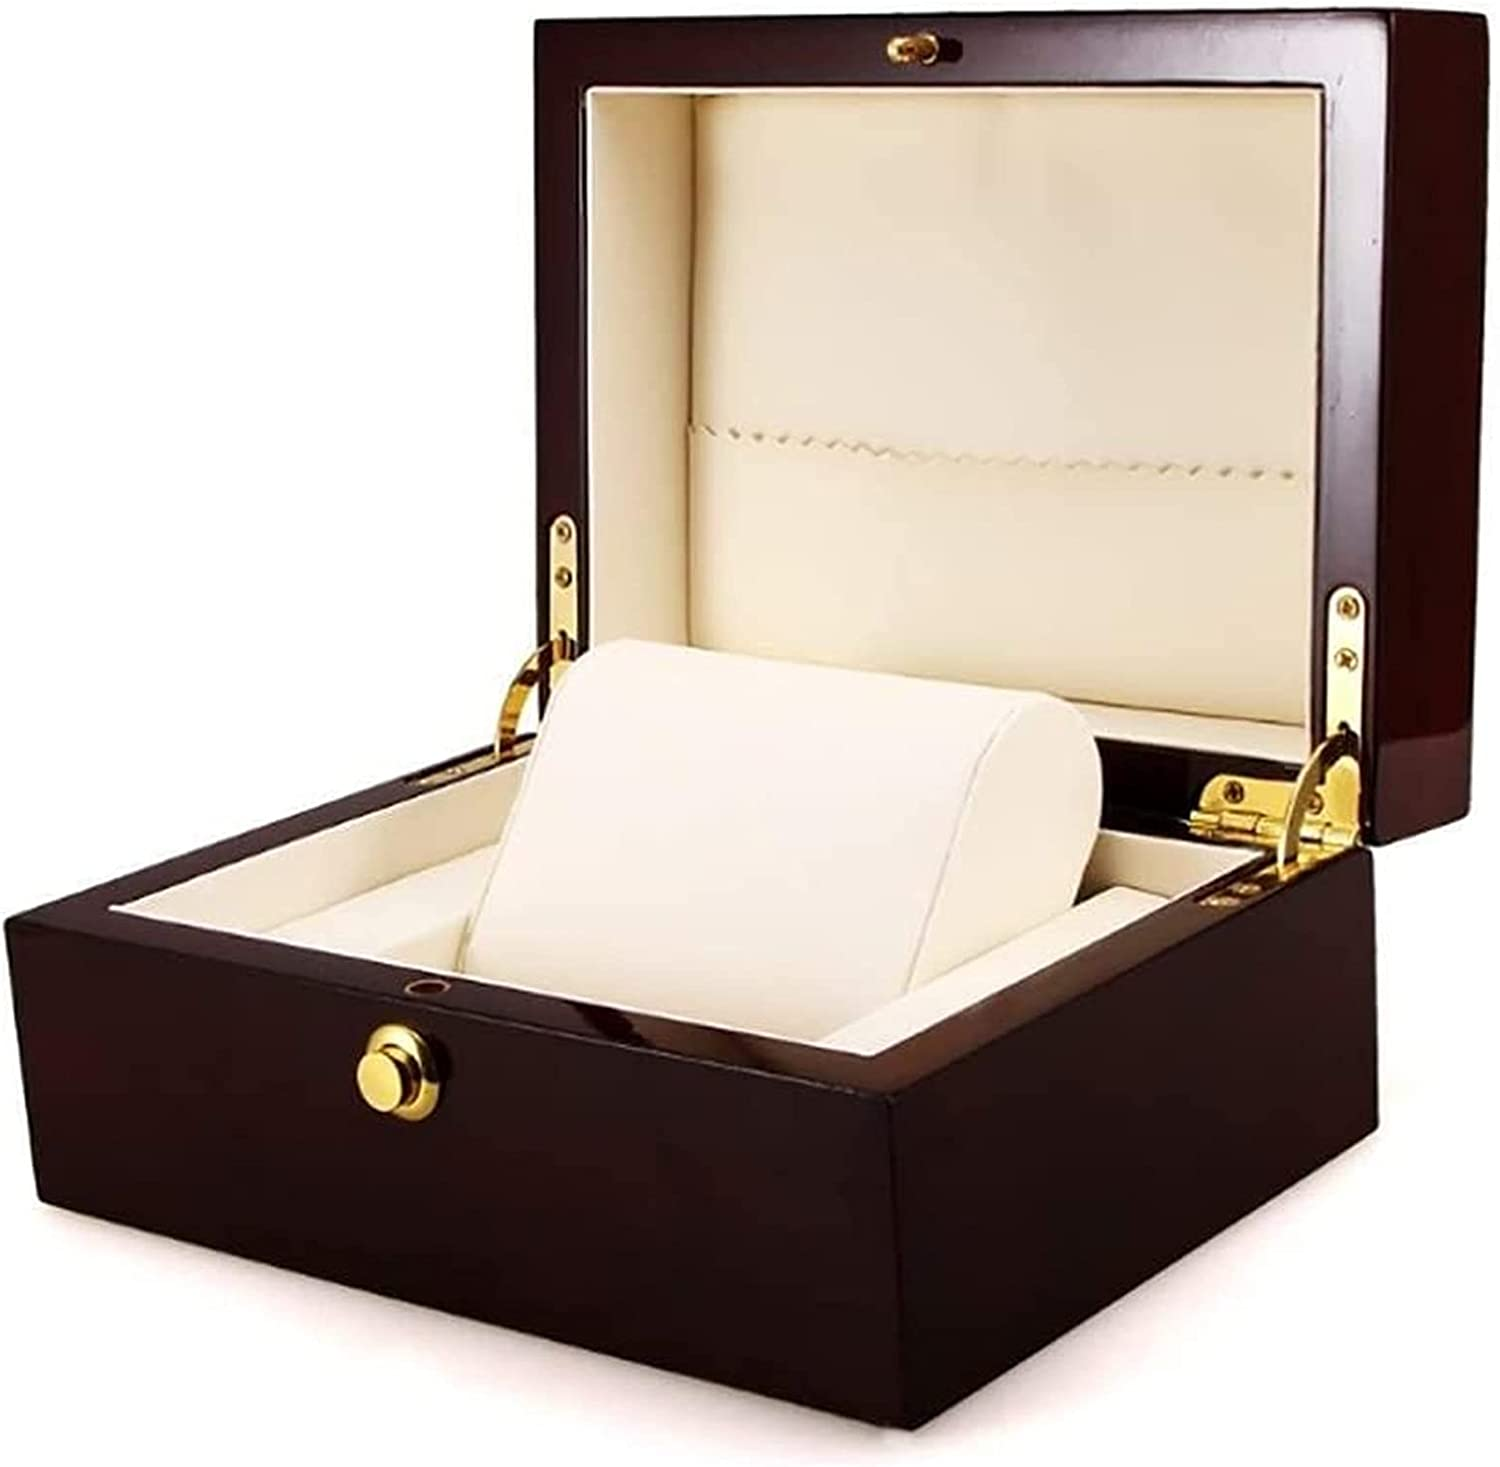 ttdl HCHENX Factory outlet Watch Box 70% OFF Outlet Wooden Display Men Wome Home and